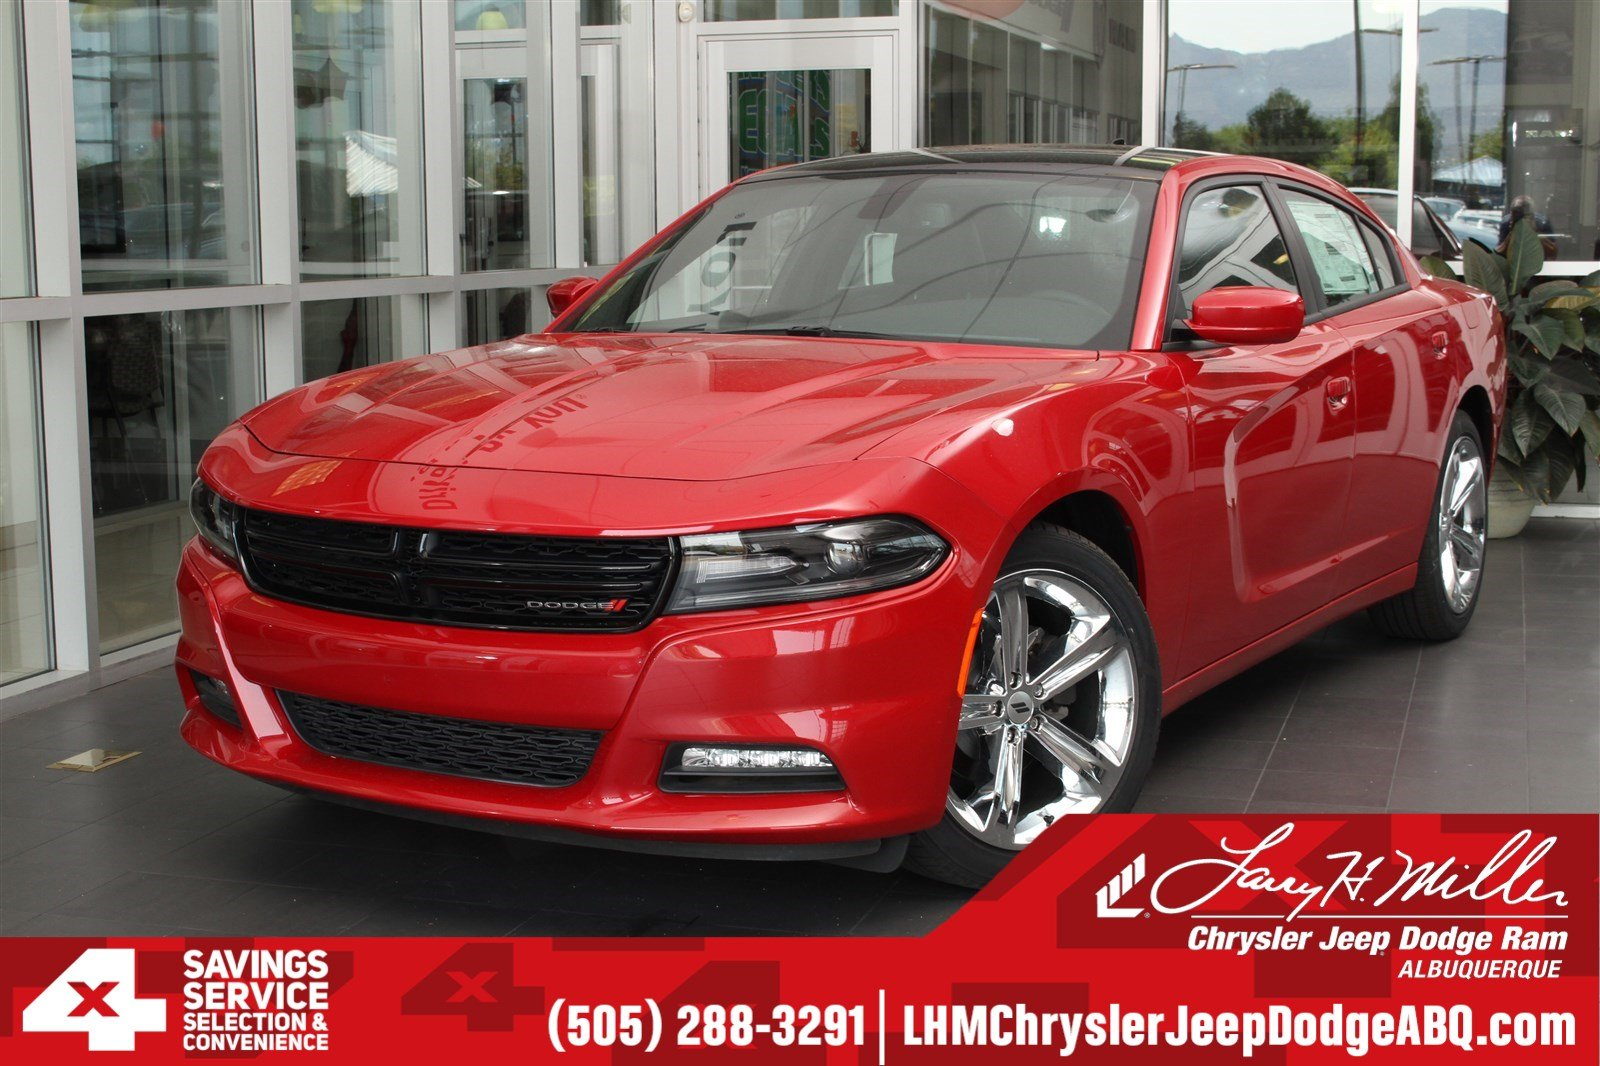 Featured new cars, trucks, and SUVs 2018 Dodge Charger SXT PLUS RWD - LEATHER Sedan for sale near you in Albuquerque, NM